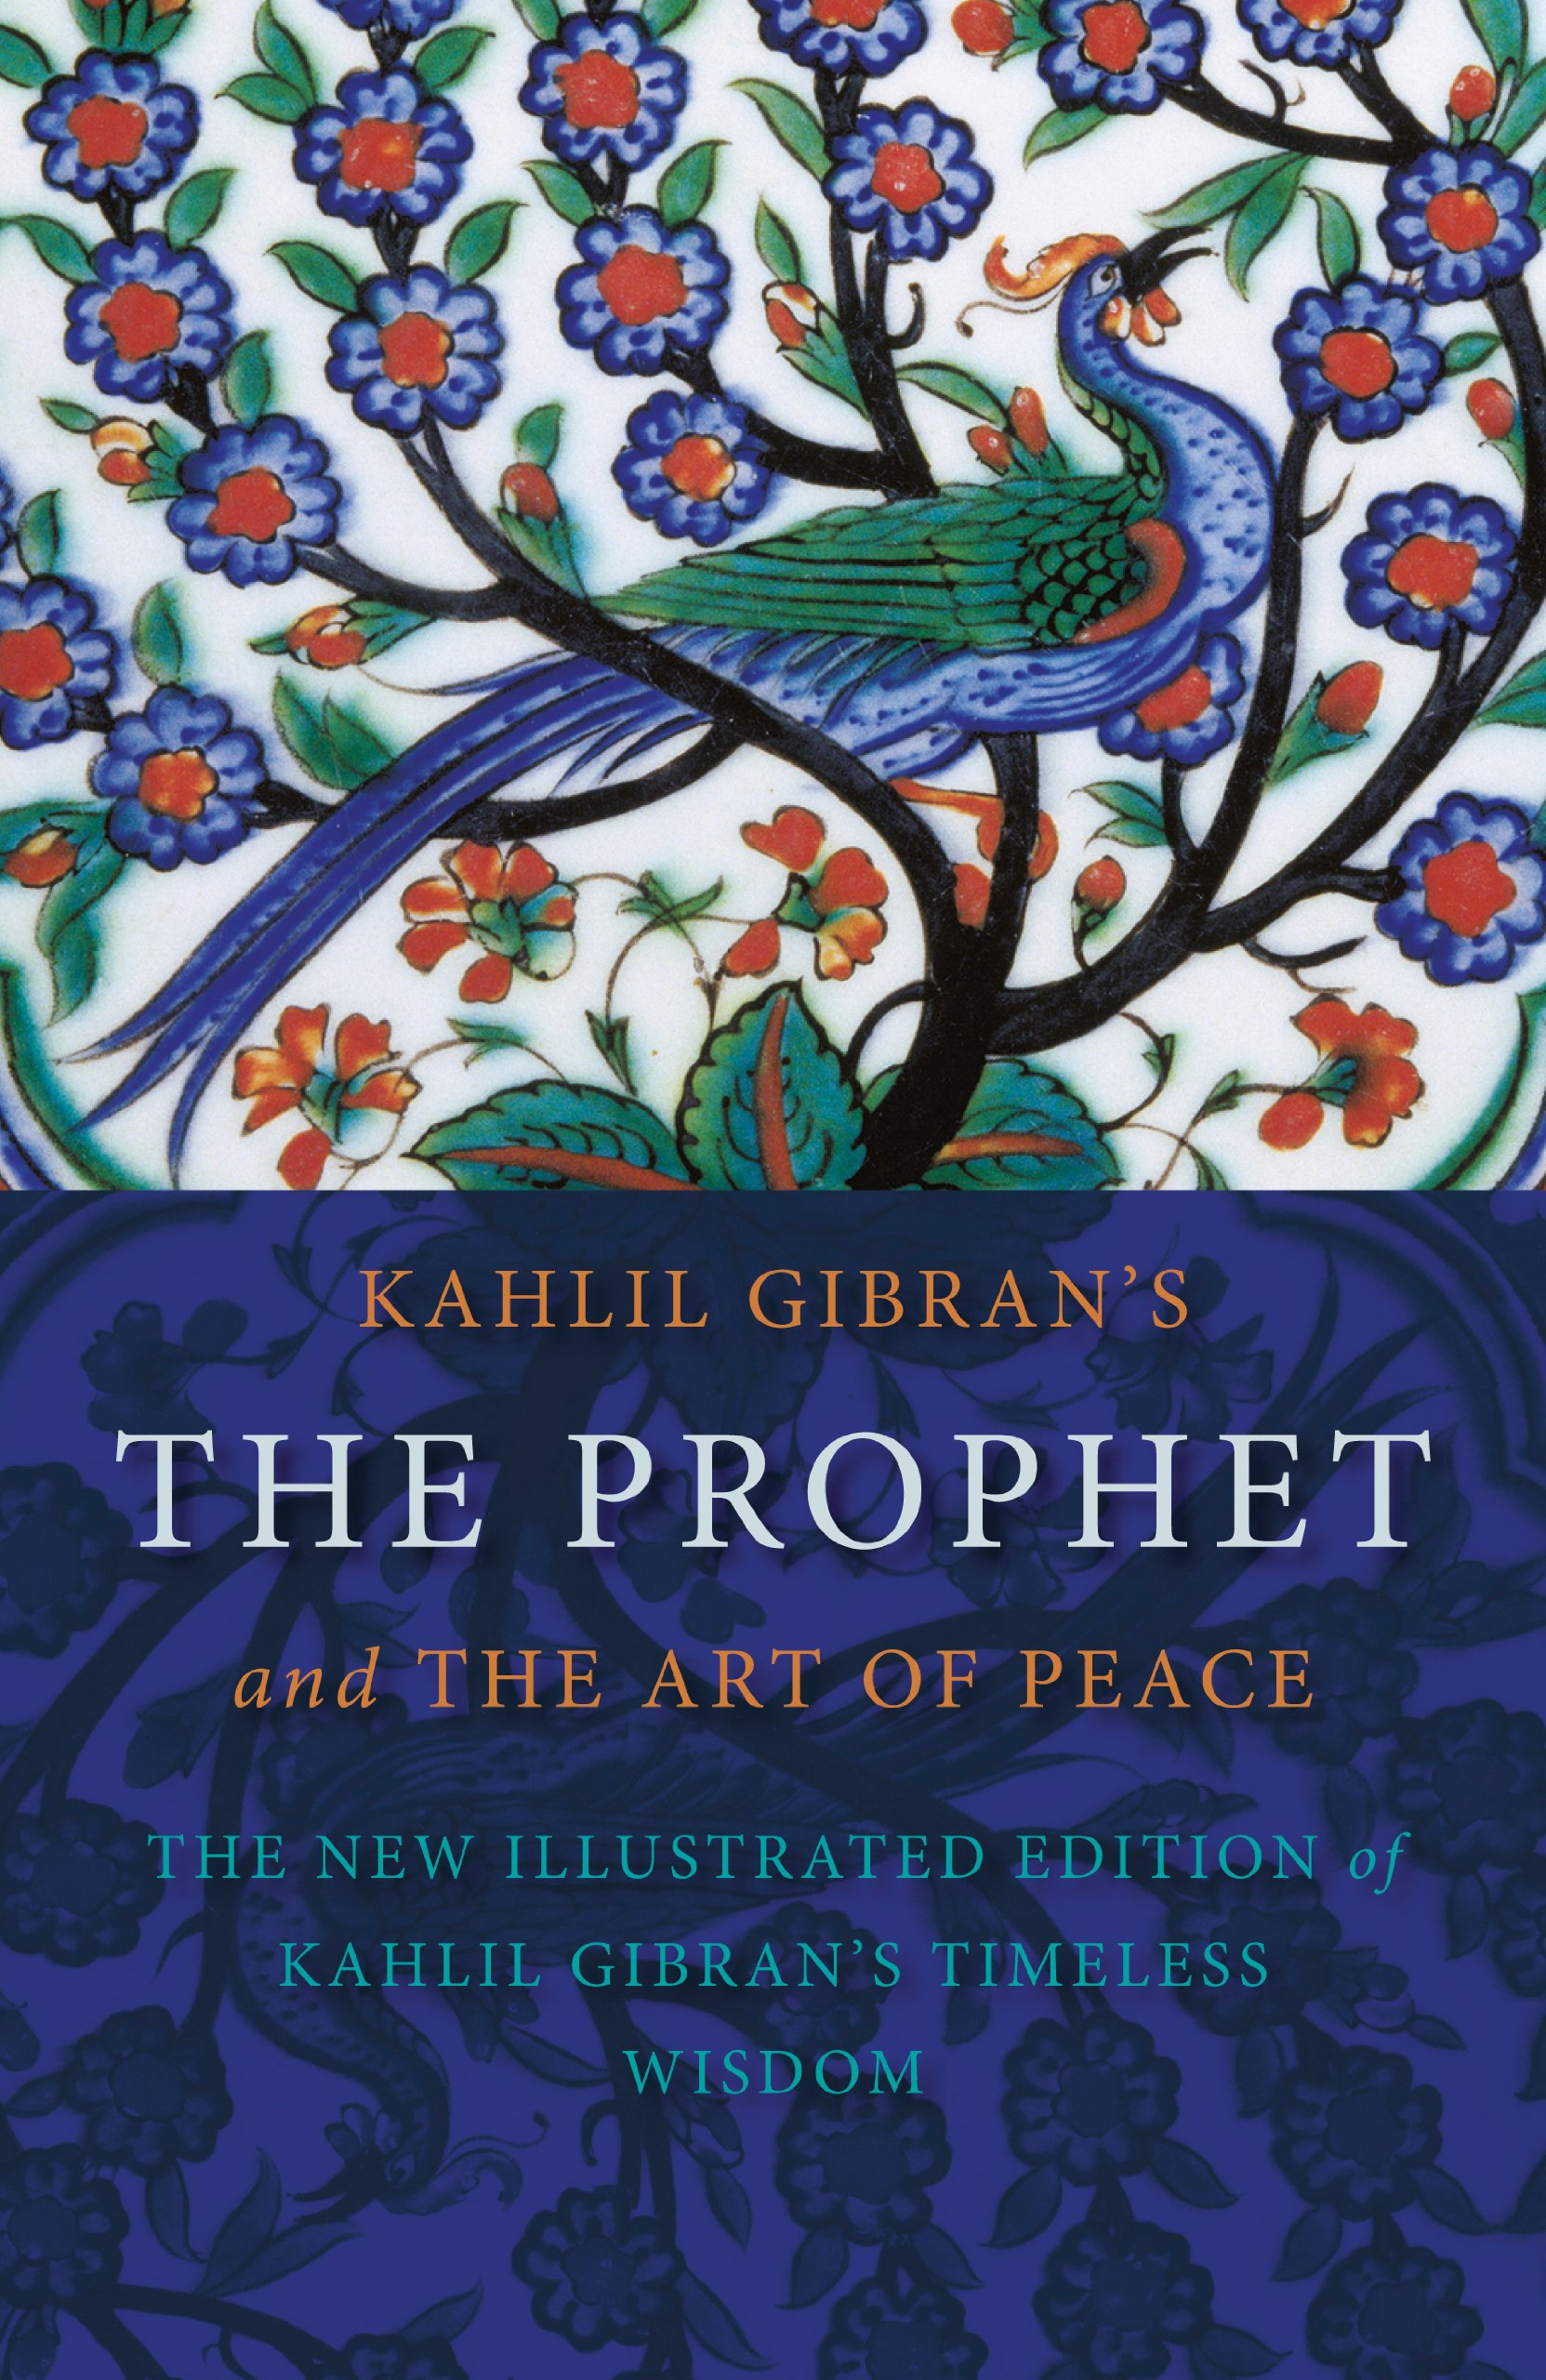 Kahlil Gibran S The Prophet And The Art Of Peace Kahlil Gibran 9781780280004 Amazon Com Books